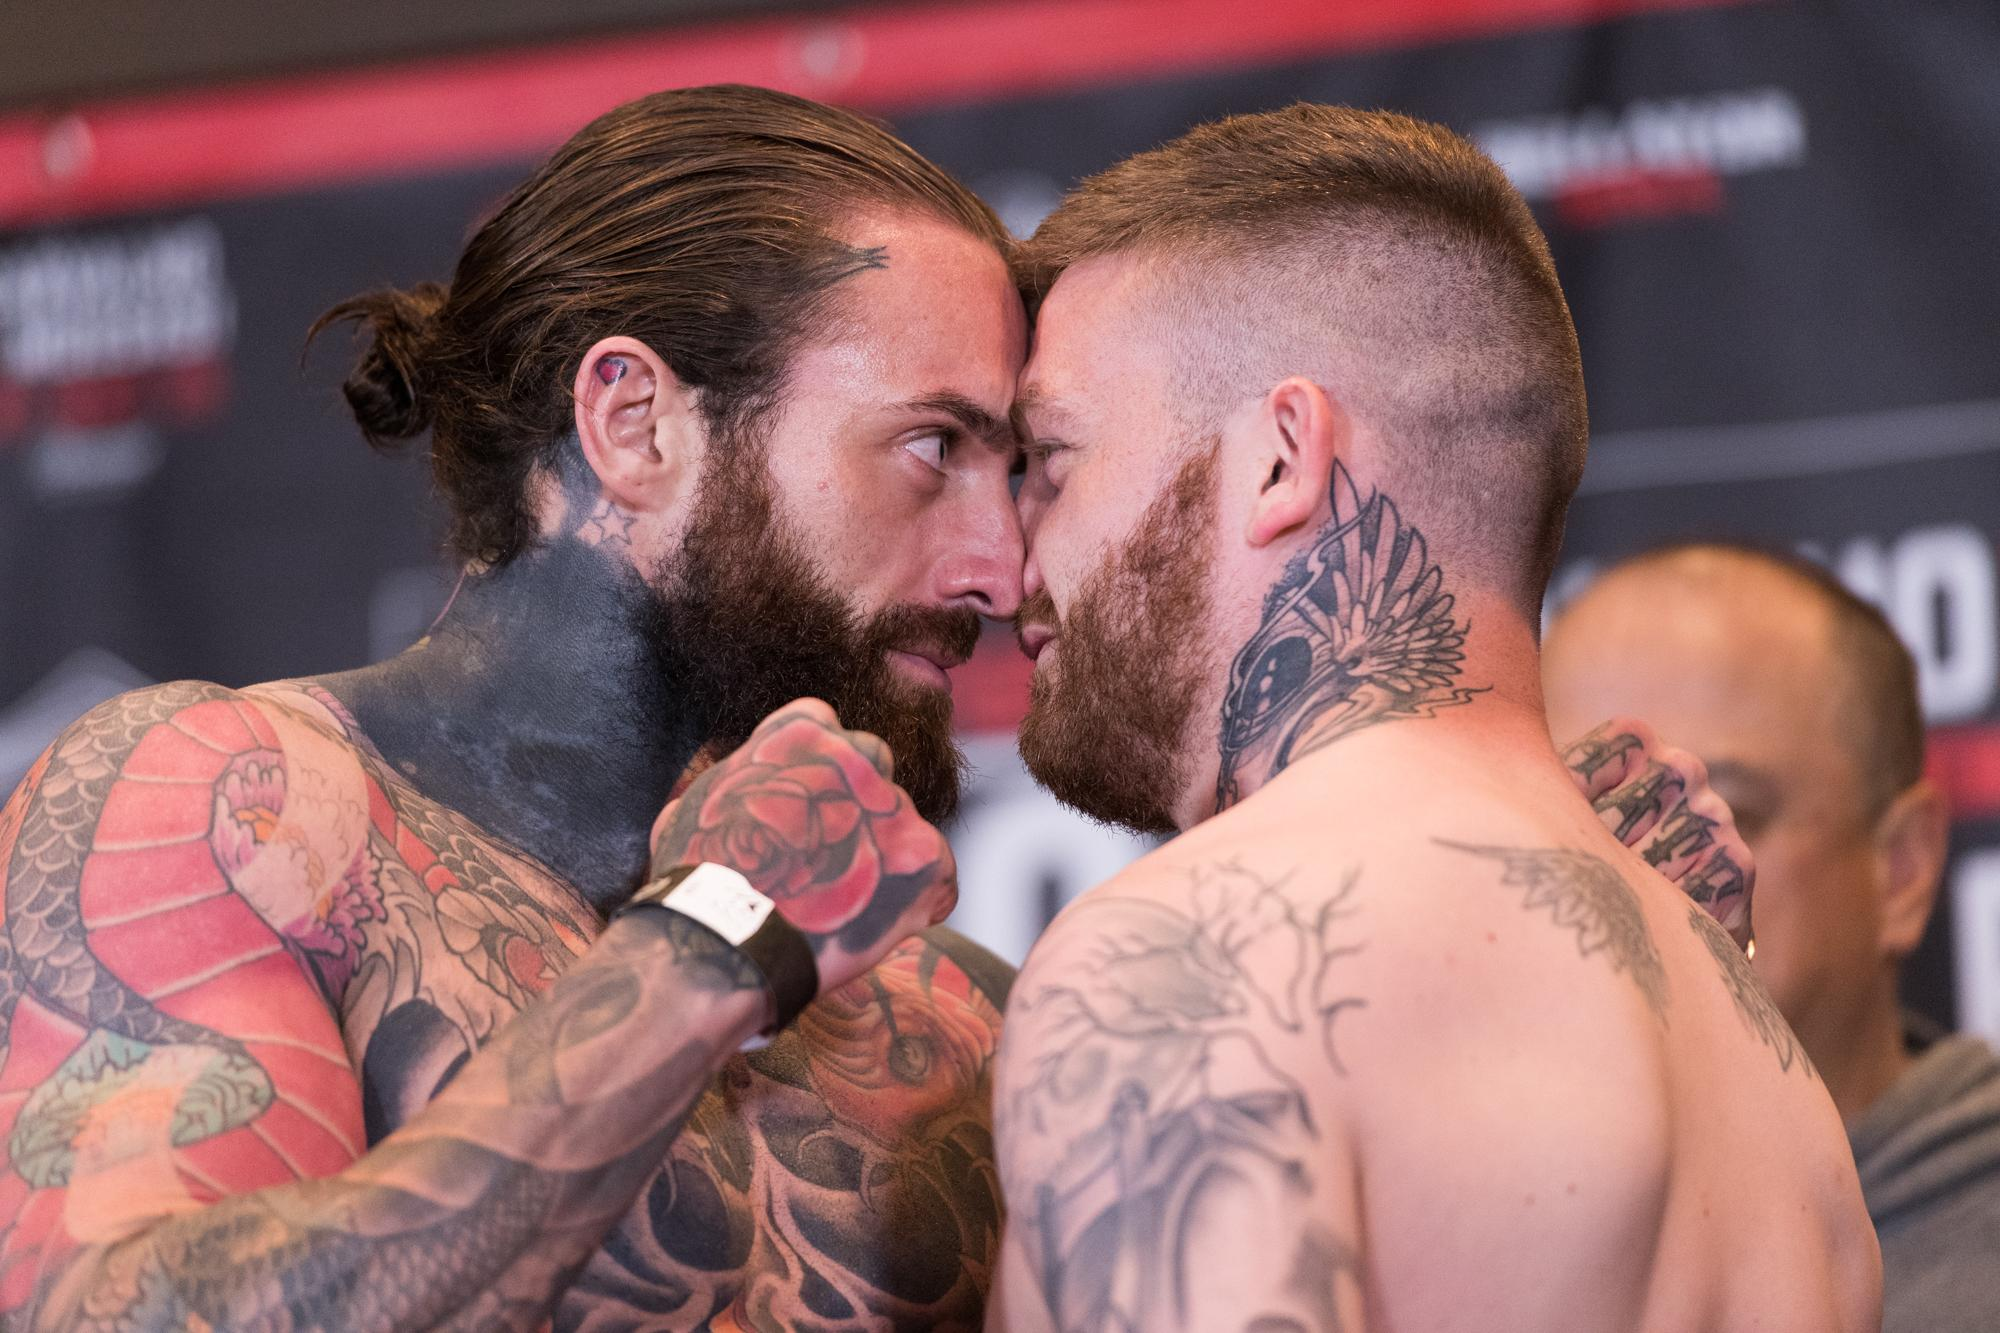 Aaron Chalmers will be fighting against Ash Griffiths tonight